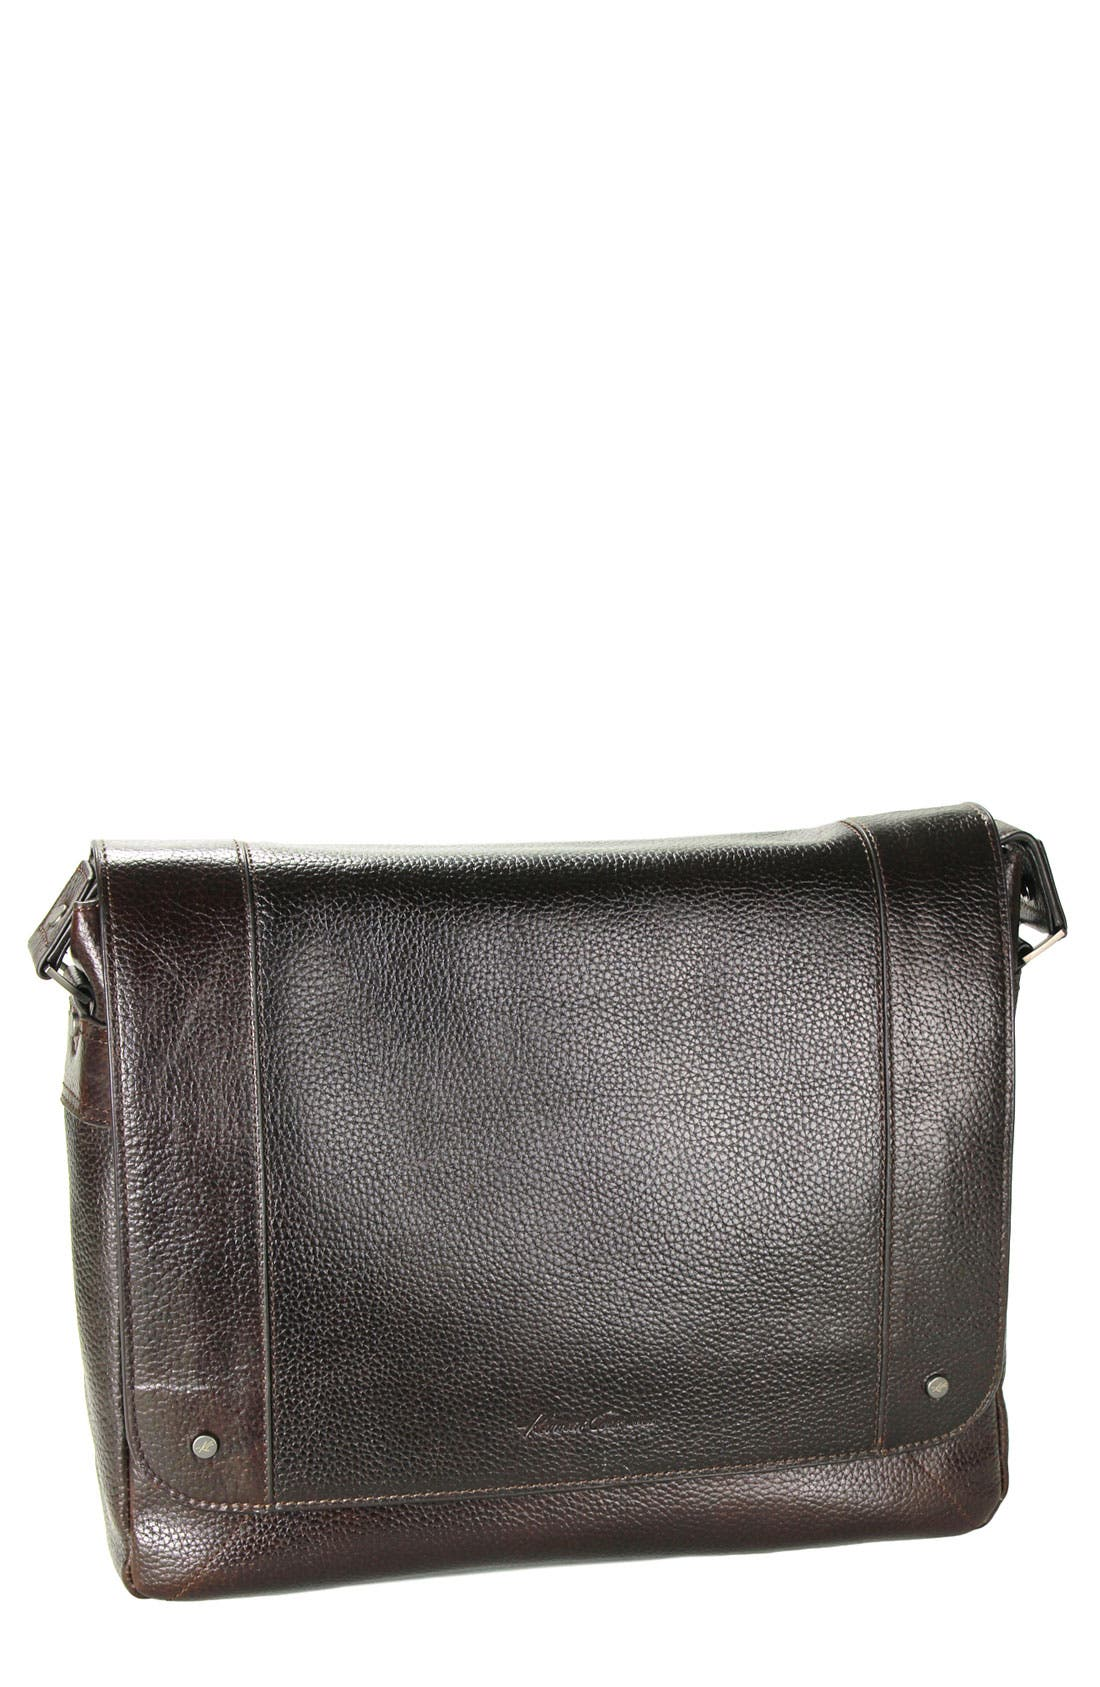 Alternate Image 1 Selected - Kenneth Cole New York 'Heritage' Leather Messenger Bag